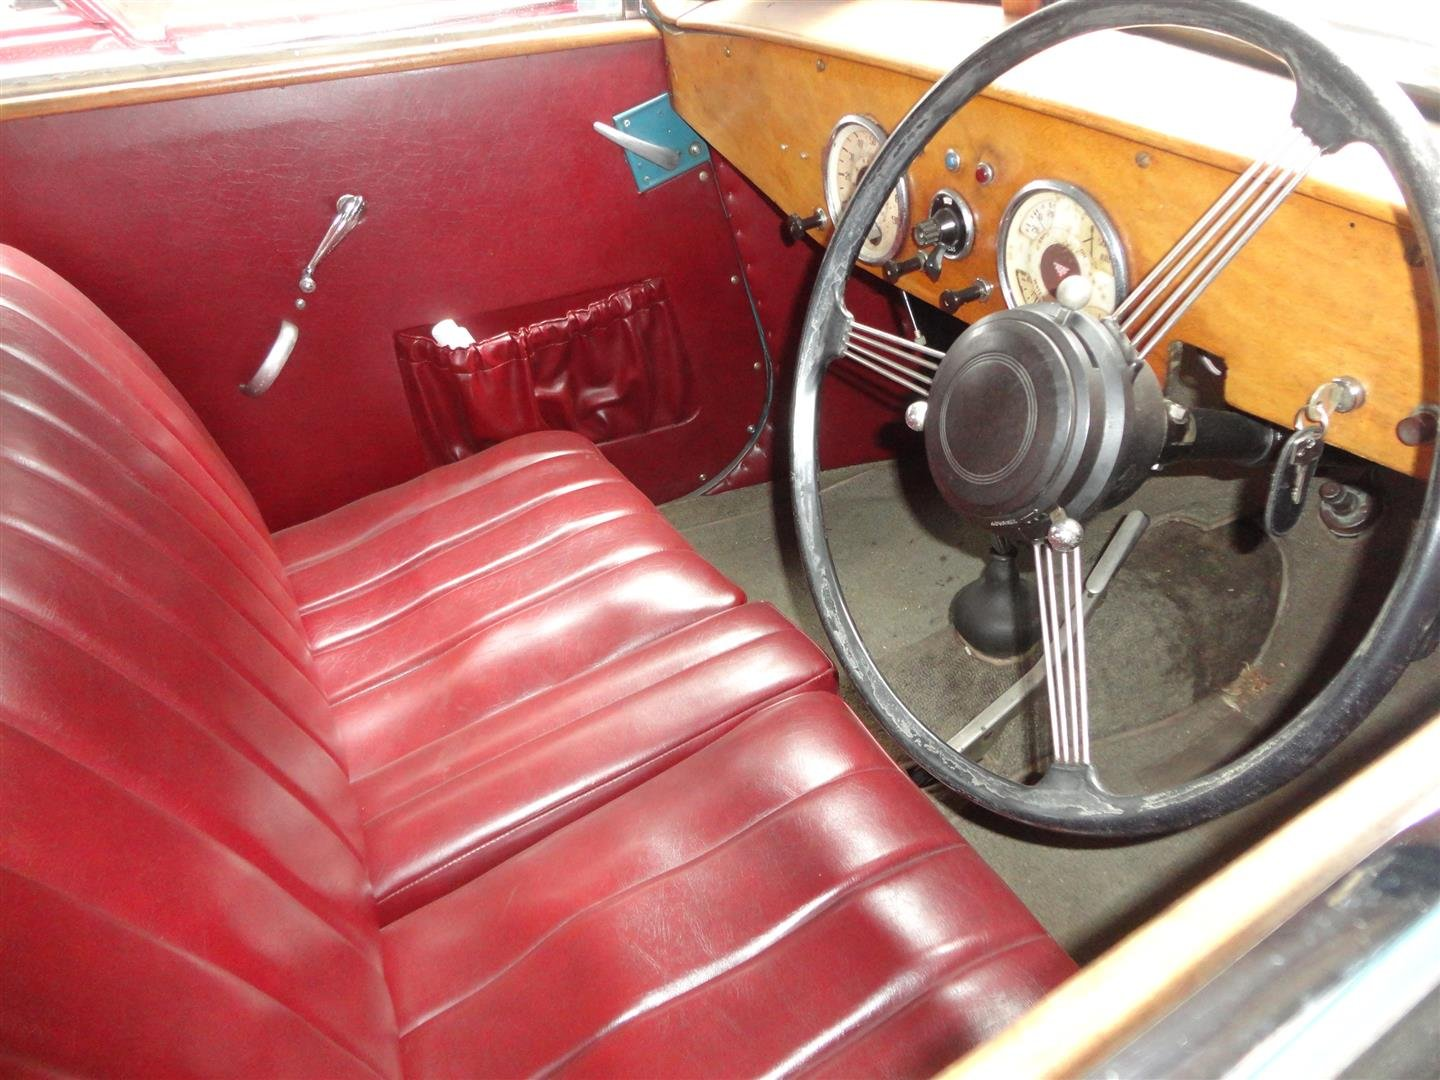 1952 Riley RMD RHD for sale For Sale (picture 3 of 6)